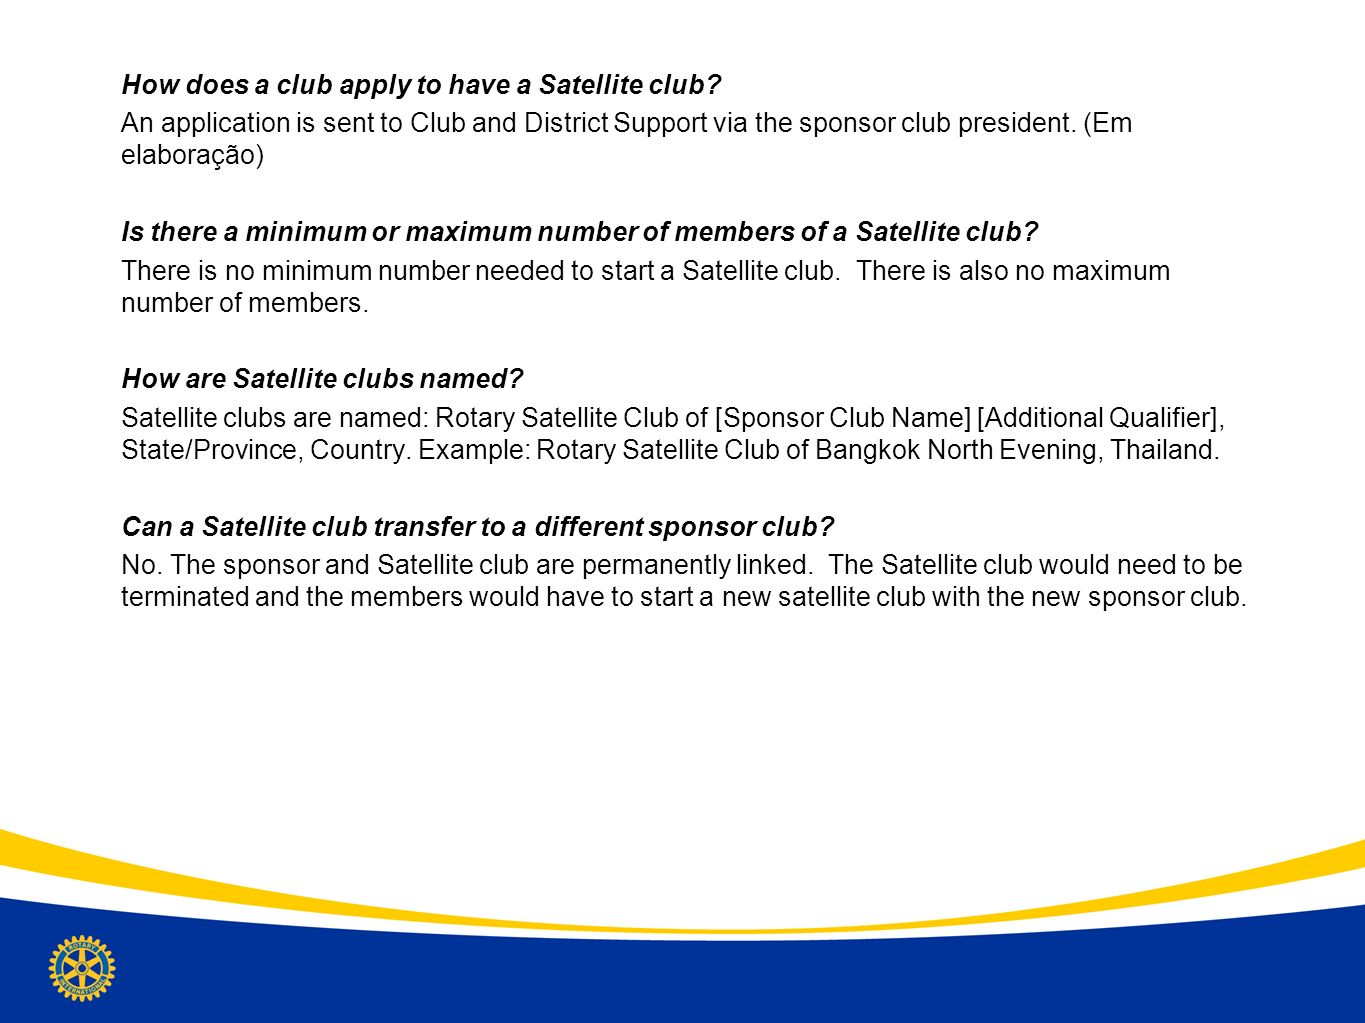 How does a club apply to have a Satellite club